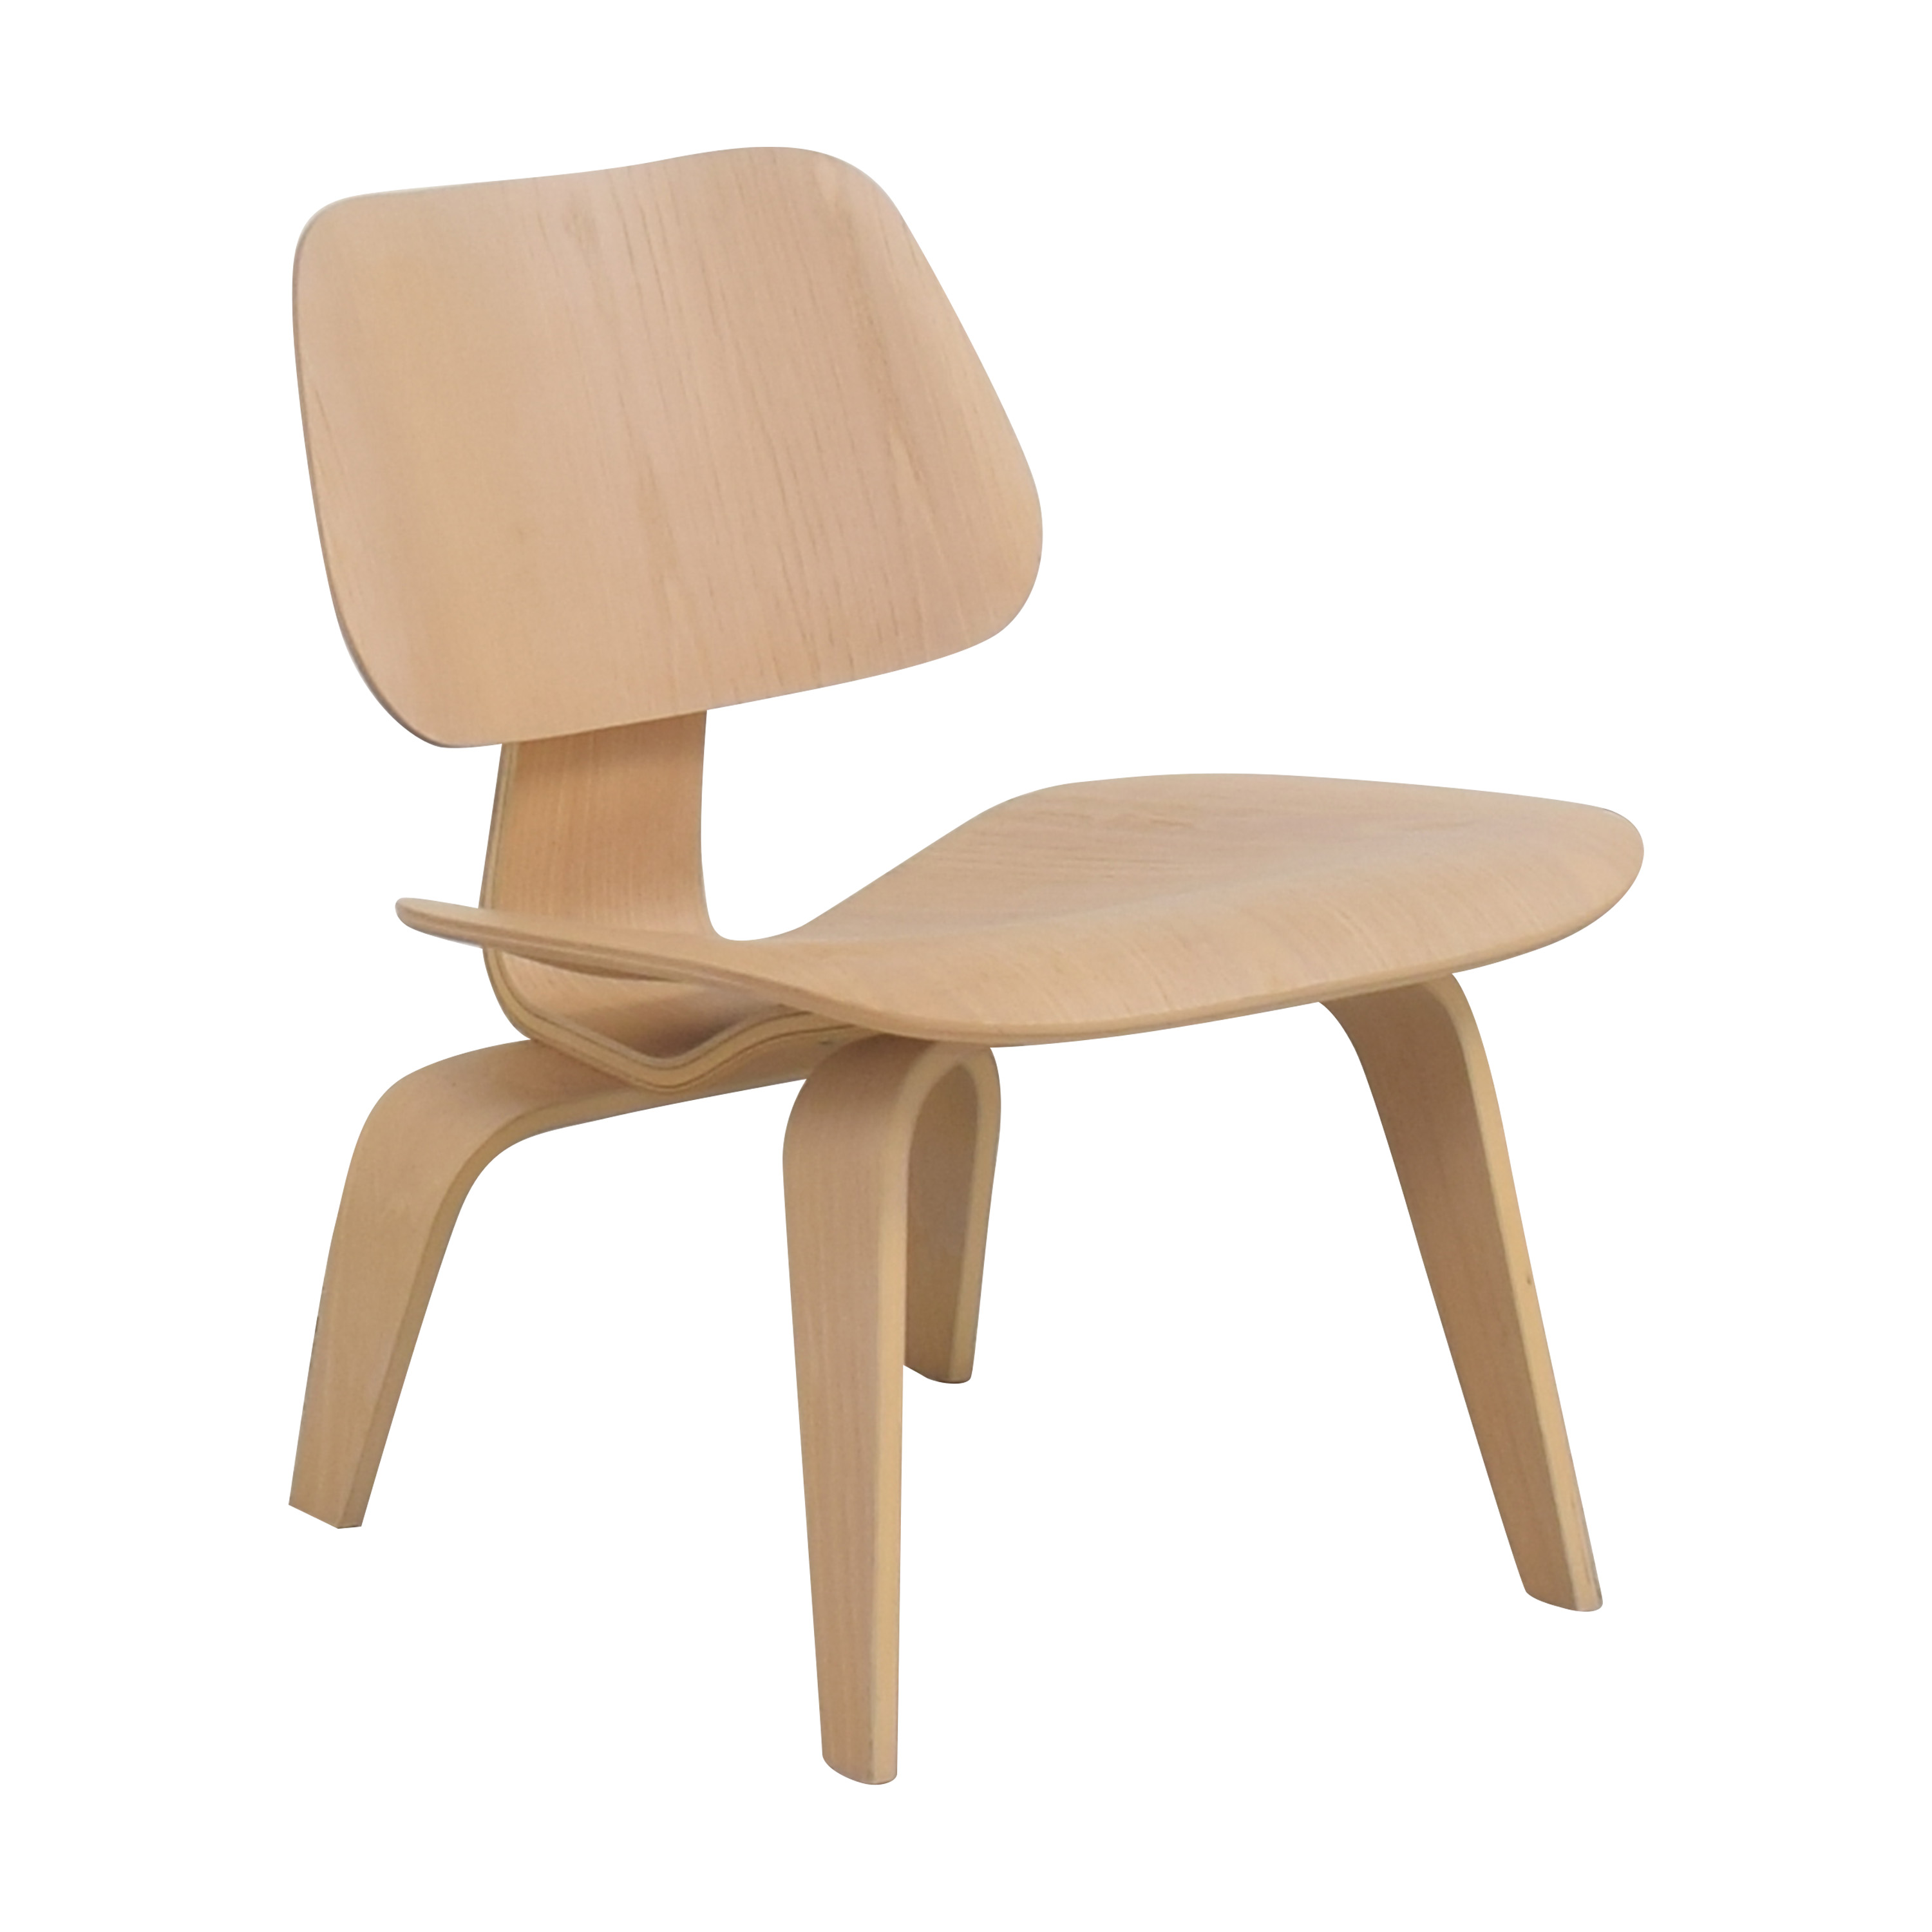 Herman Miller Herman Miller Eames Office Molded Plywood Lounge Chair Chairs